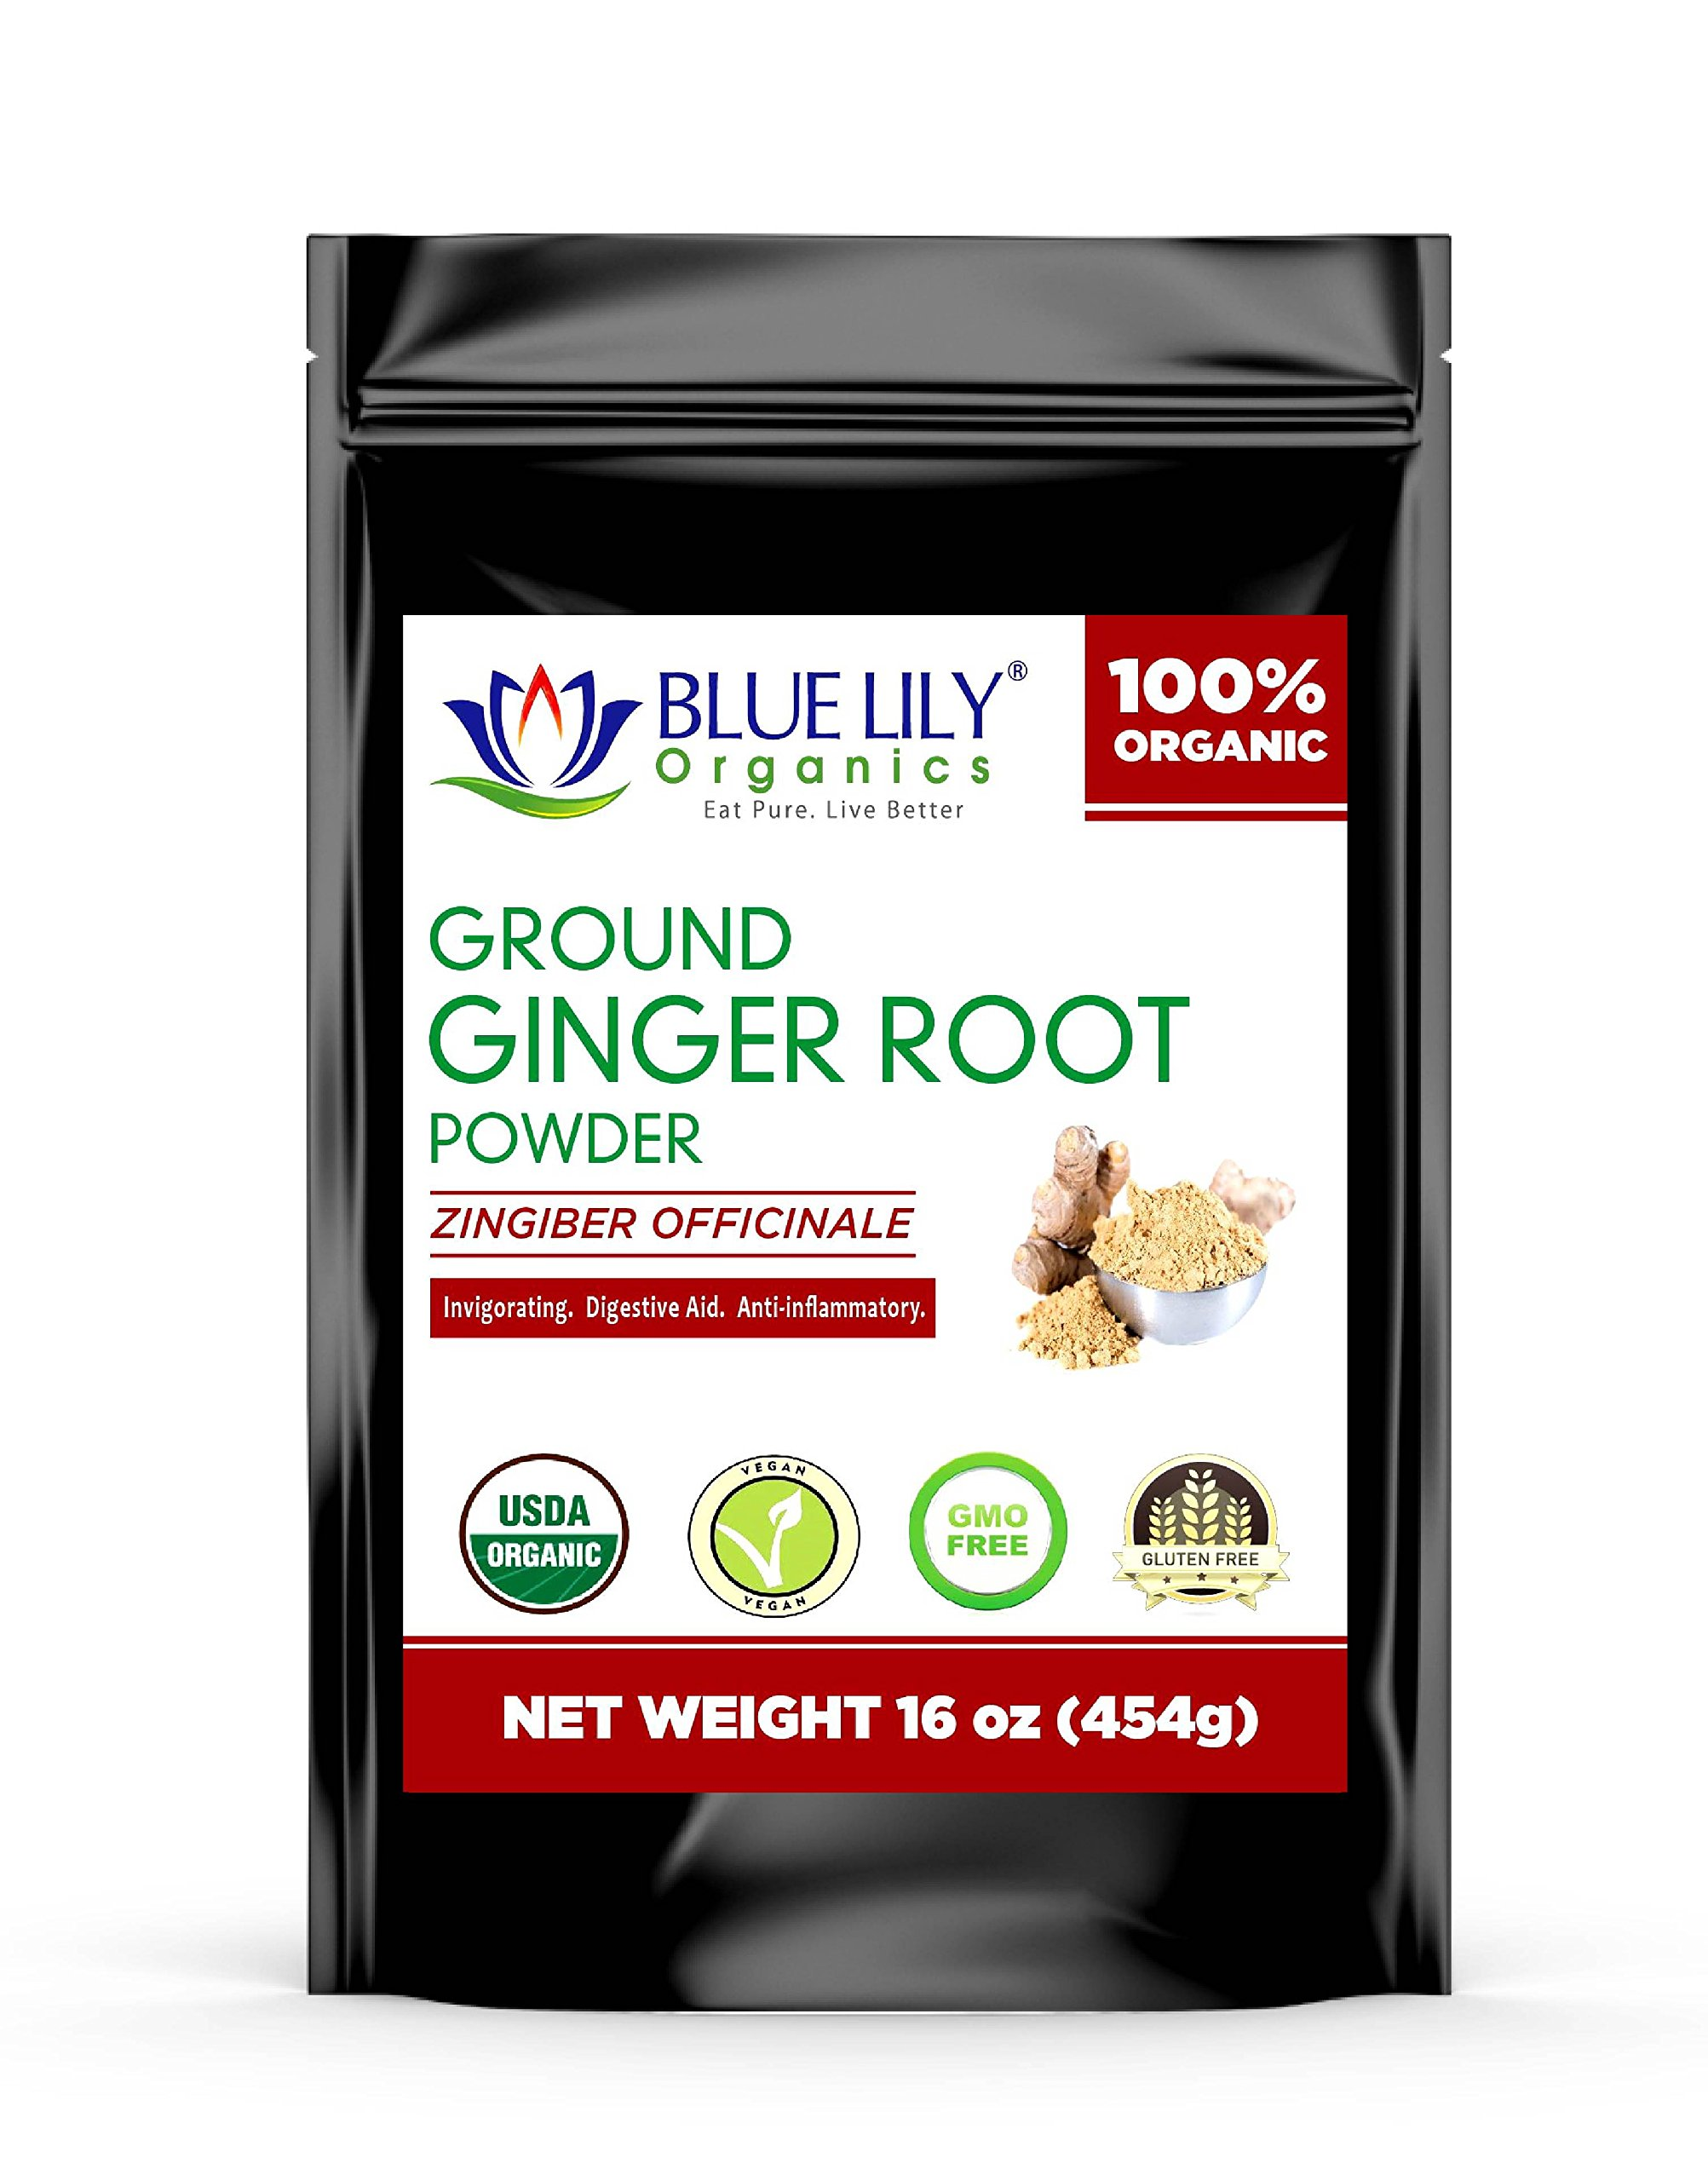 Blue Lily Organics Ground Ginger Root Powder Organic 1 Lb Bulk, 100% Pure, Non-GMO